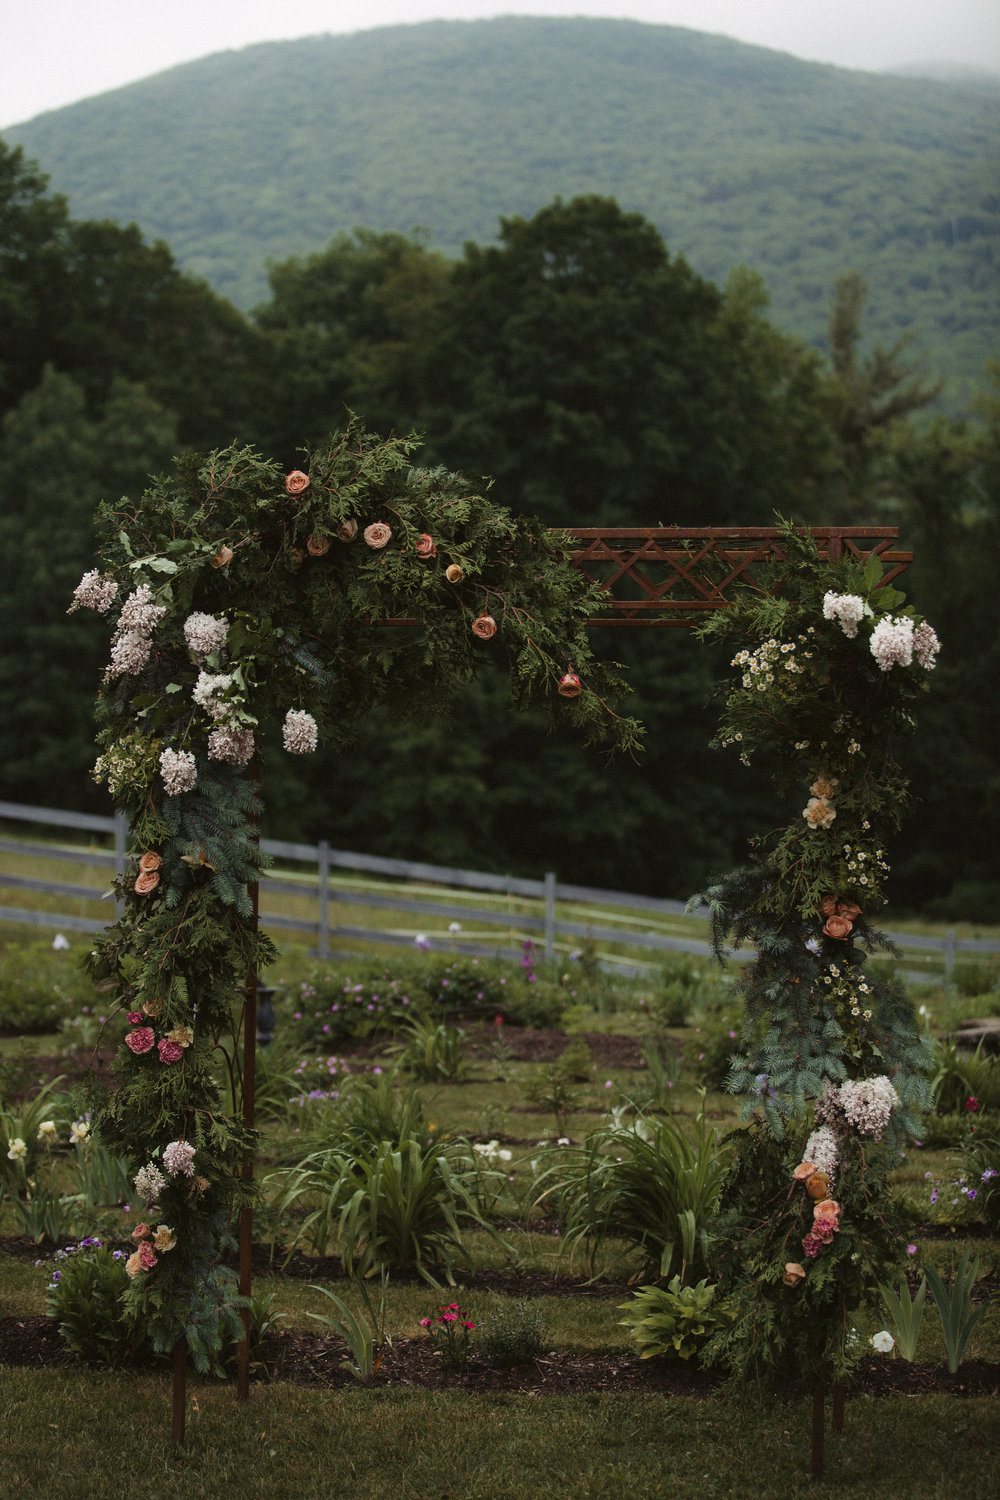 Ceremony flower arrangements by Nectar & Root | Wedding floral design services in Burlington, Vermont (VT) | Arbor with lilacs, garden roses, chamomile